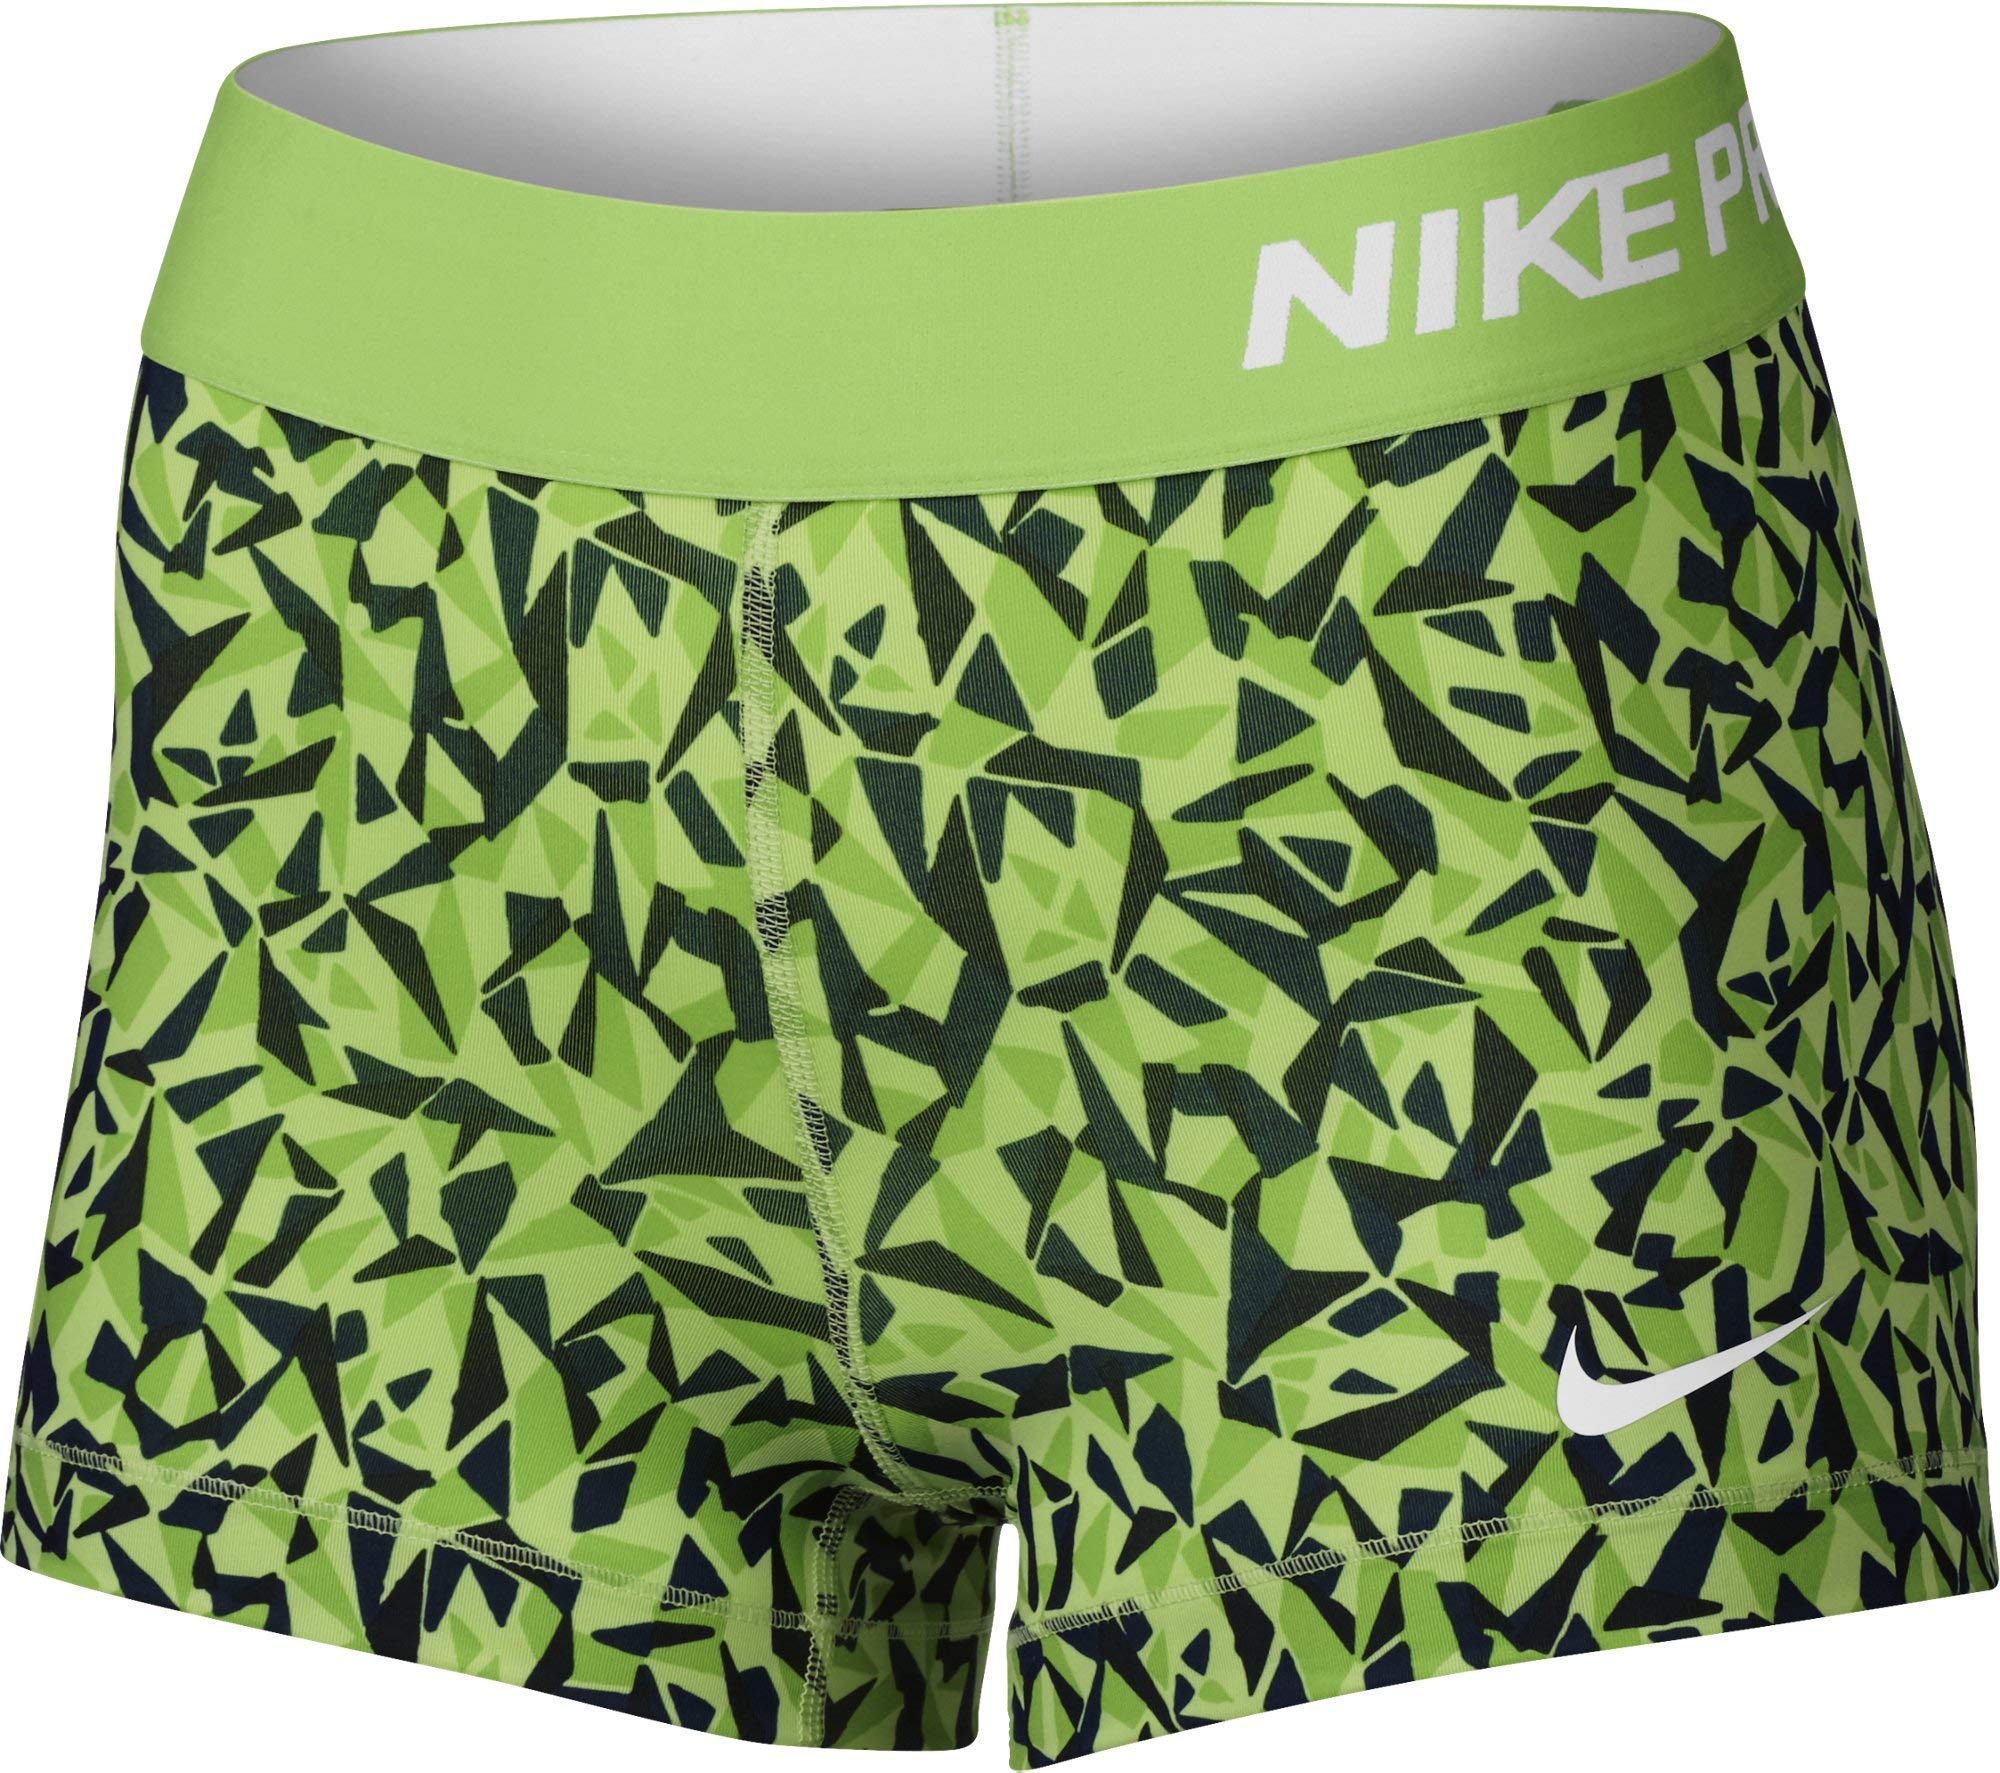 Nike Pro 3'' Cool Short Facet Women's Shorts (Action Green/Black/Key Lime/White, X-Small)